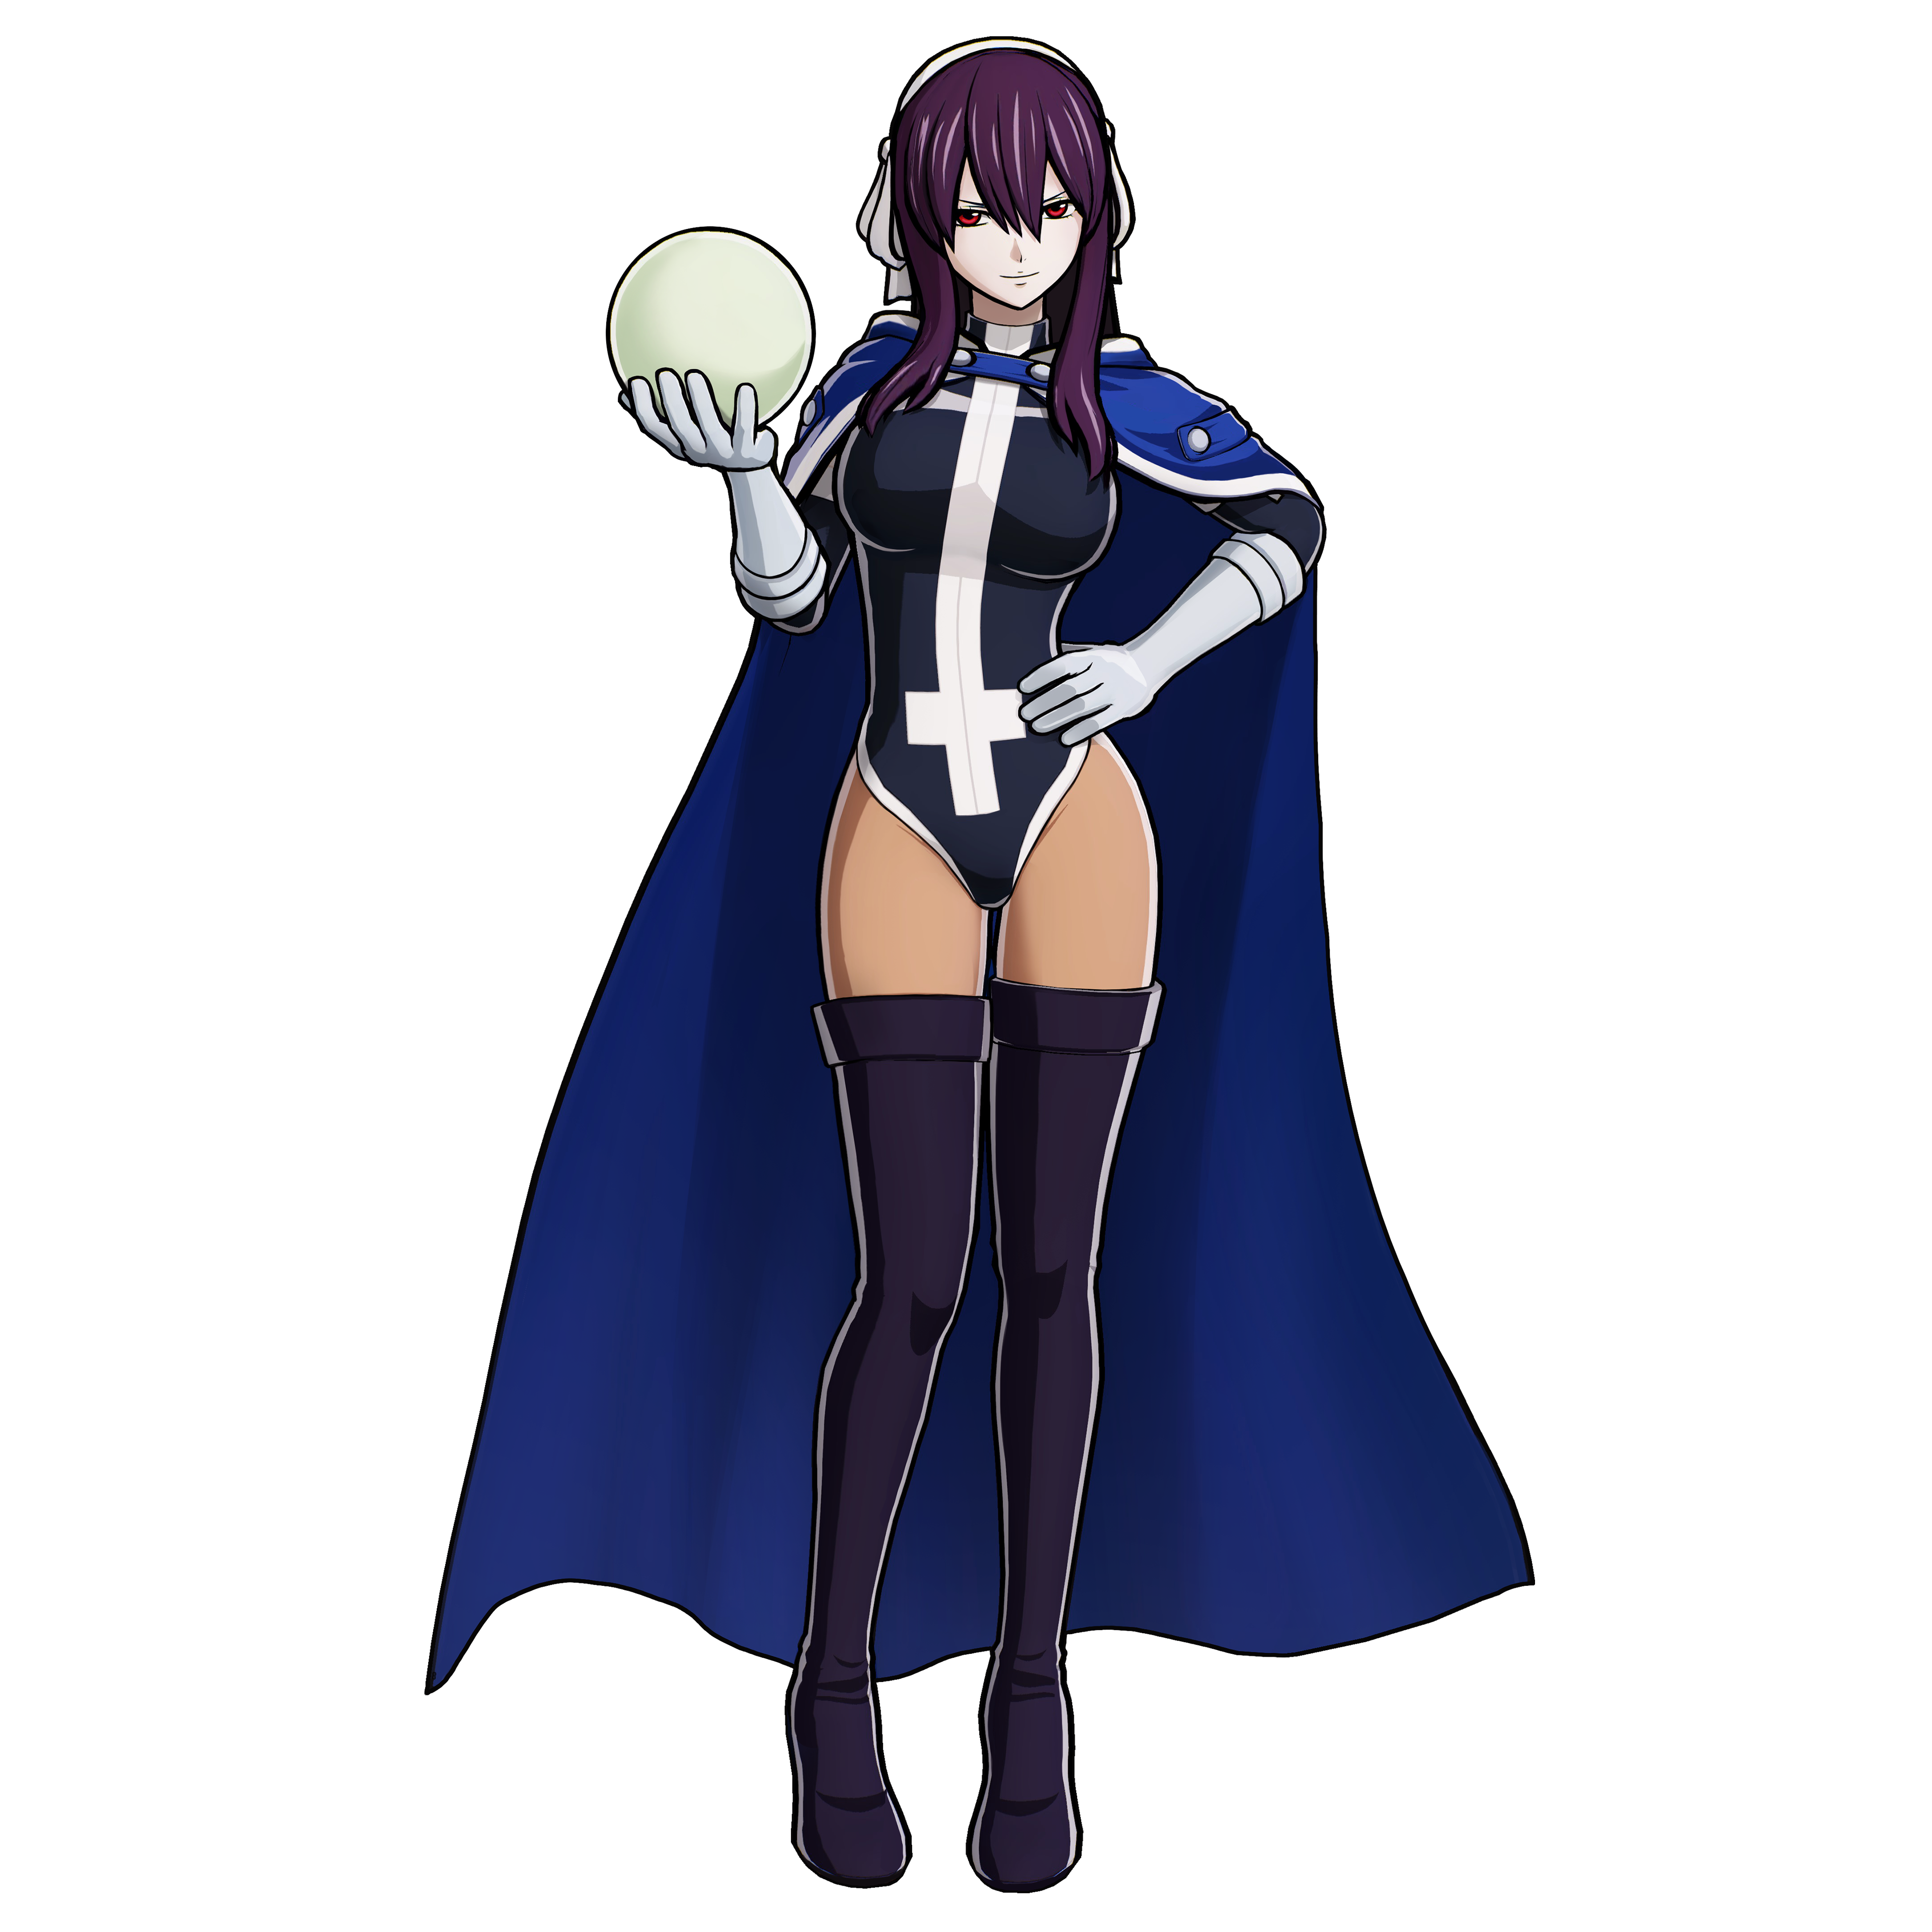 Ultear Milkovich Render (Fairy Tail Game).png